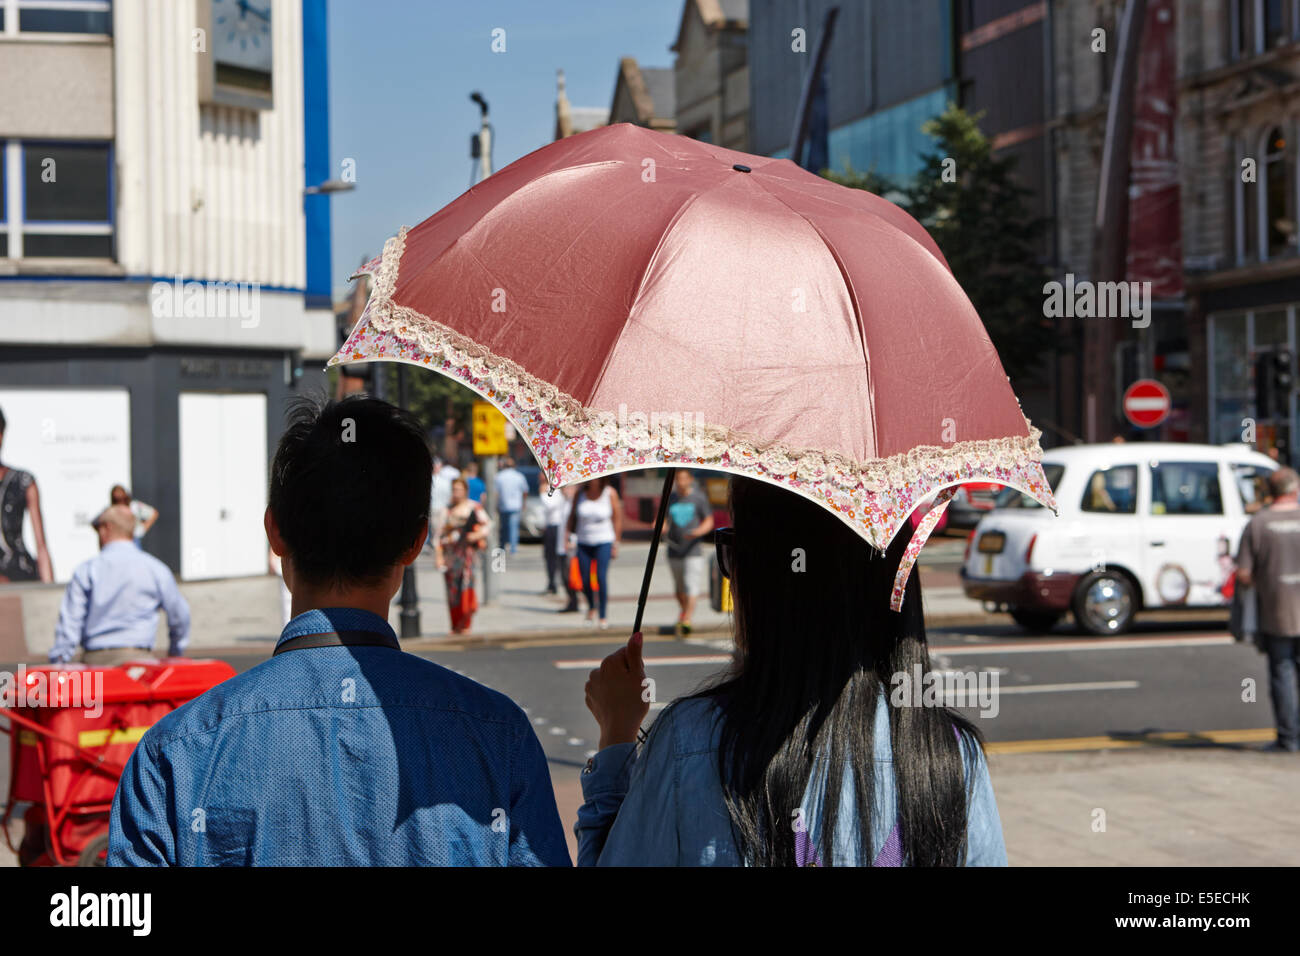 male and female asian tourist couple using a parasol on a hot sunny summers day in Belfast city centre - Stock Image